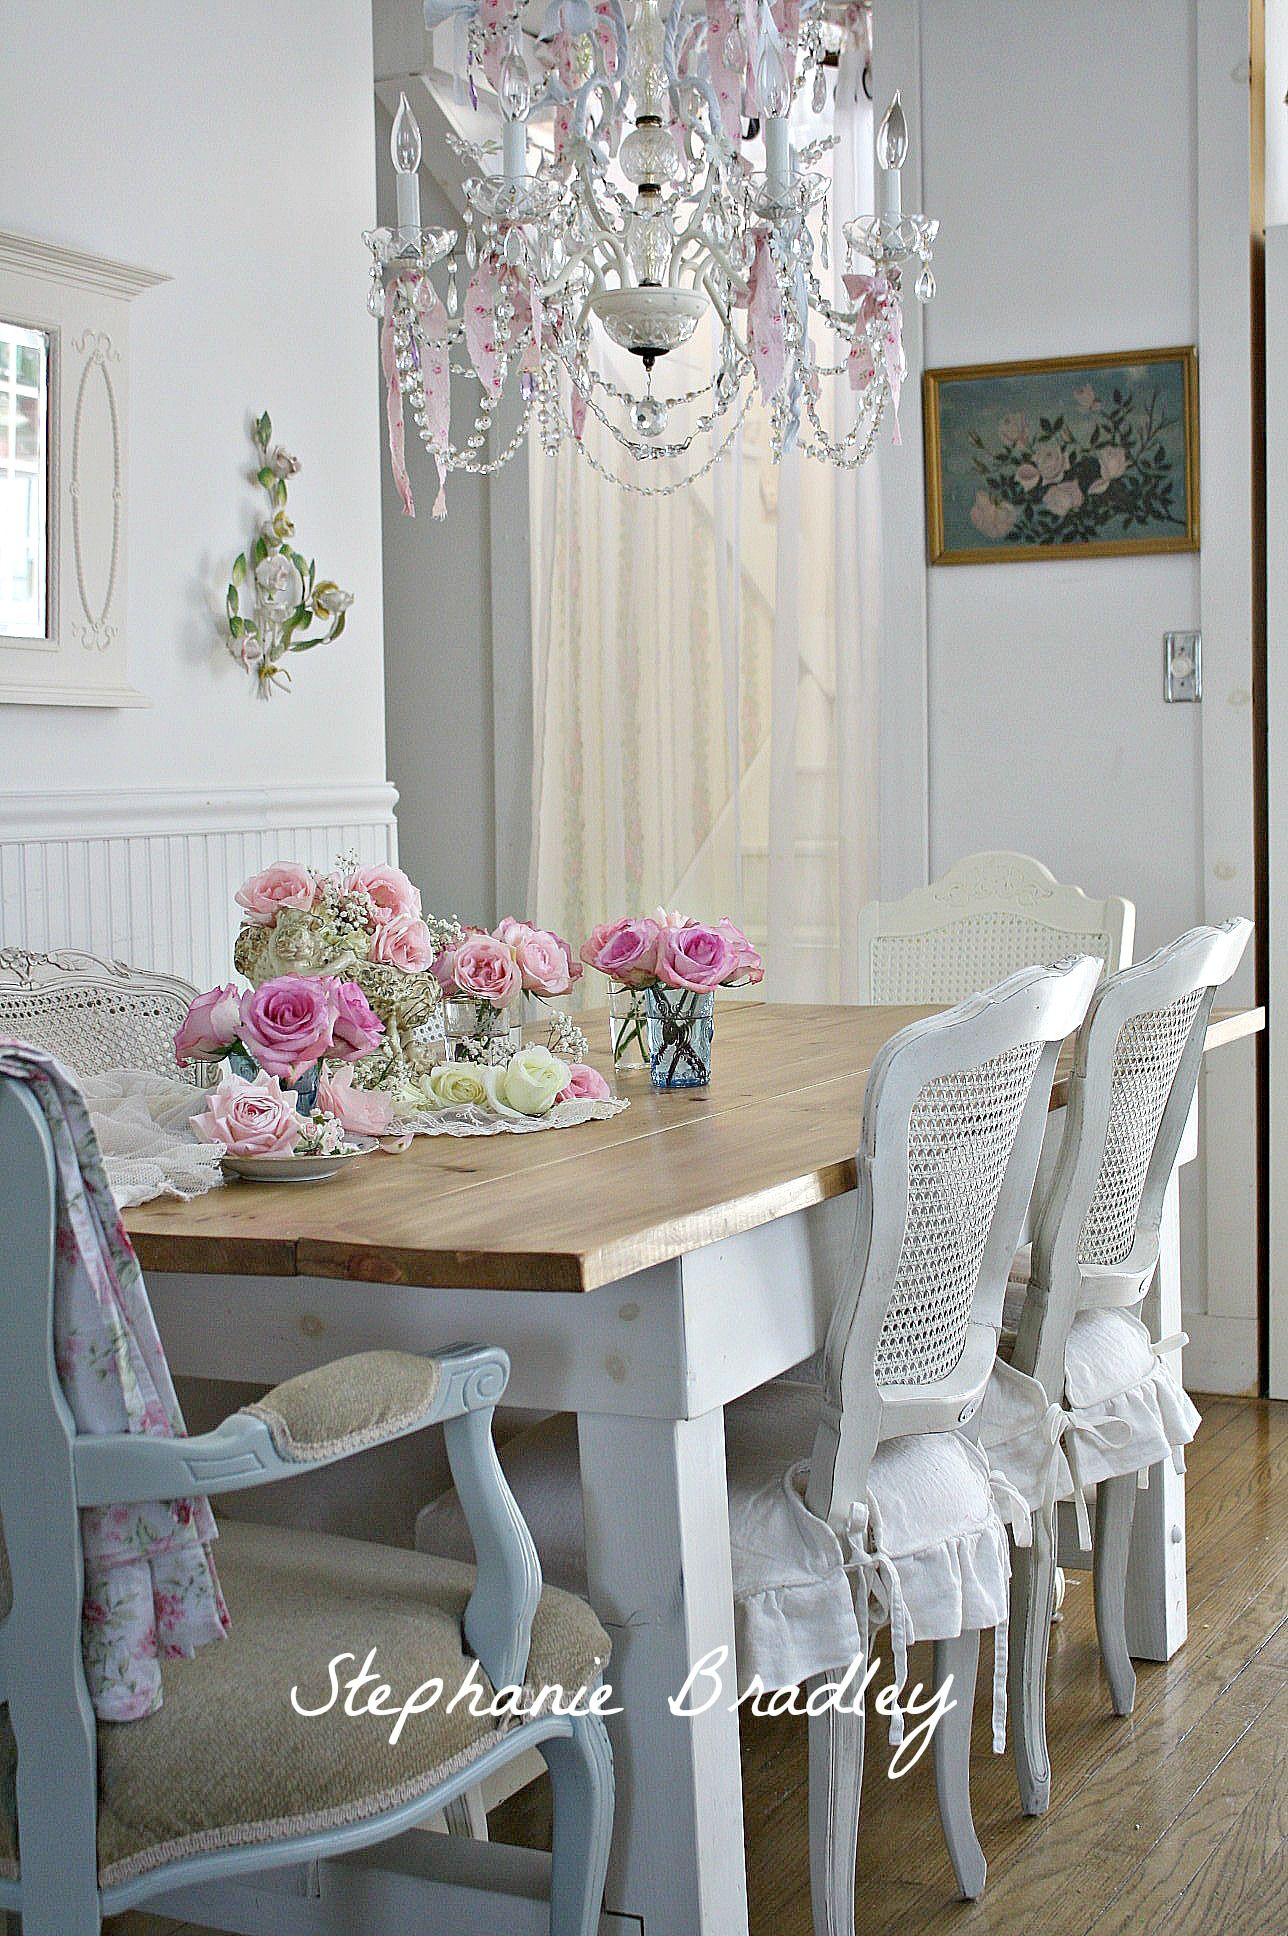 Sessel Shabby Chic Pin By Tonbak Shop Larilli On Stühle Sessel Chair Shabby